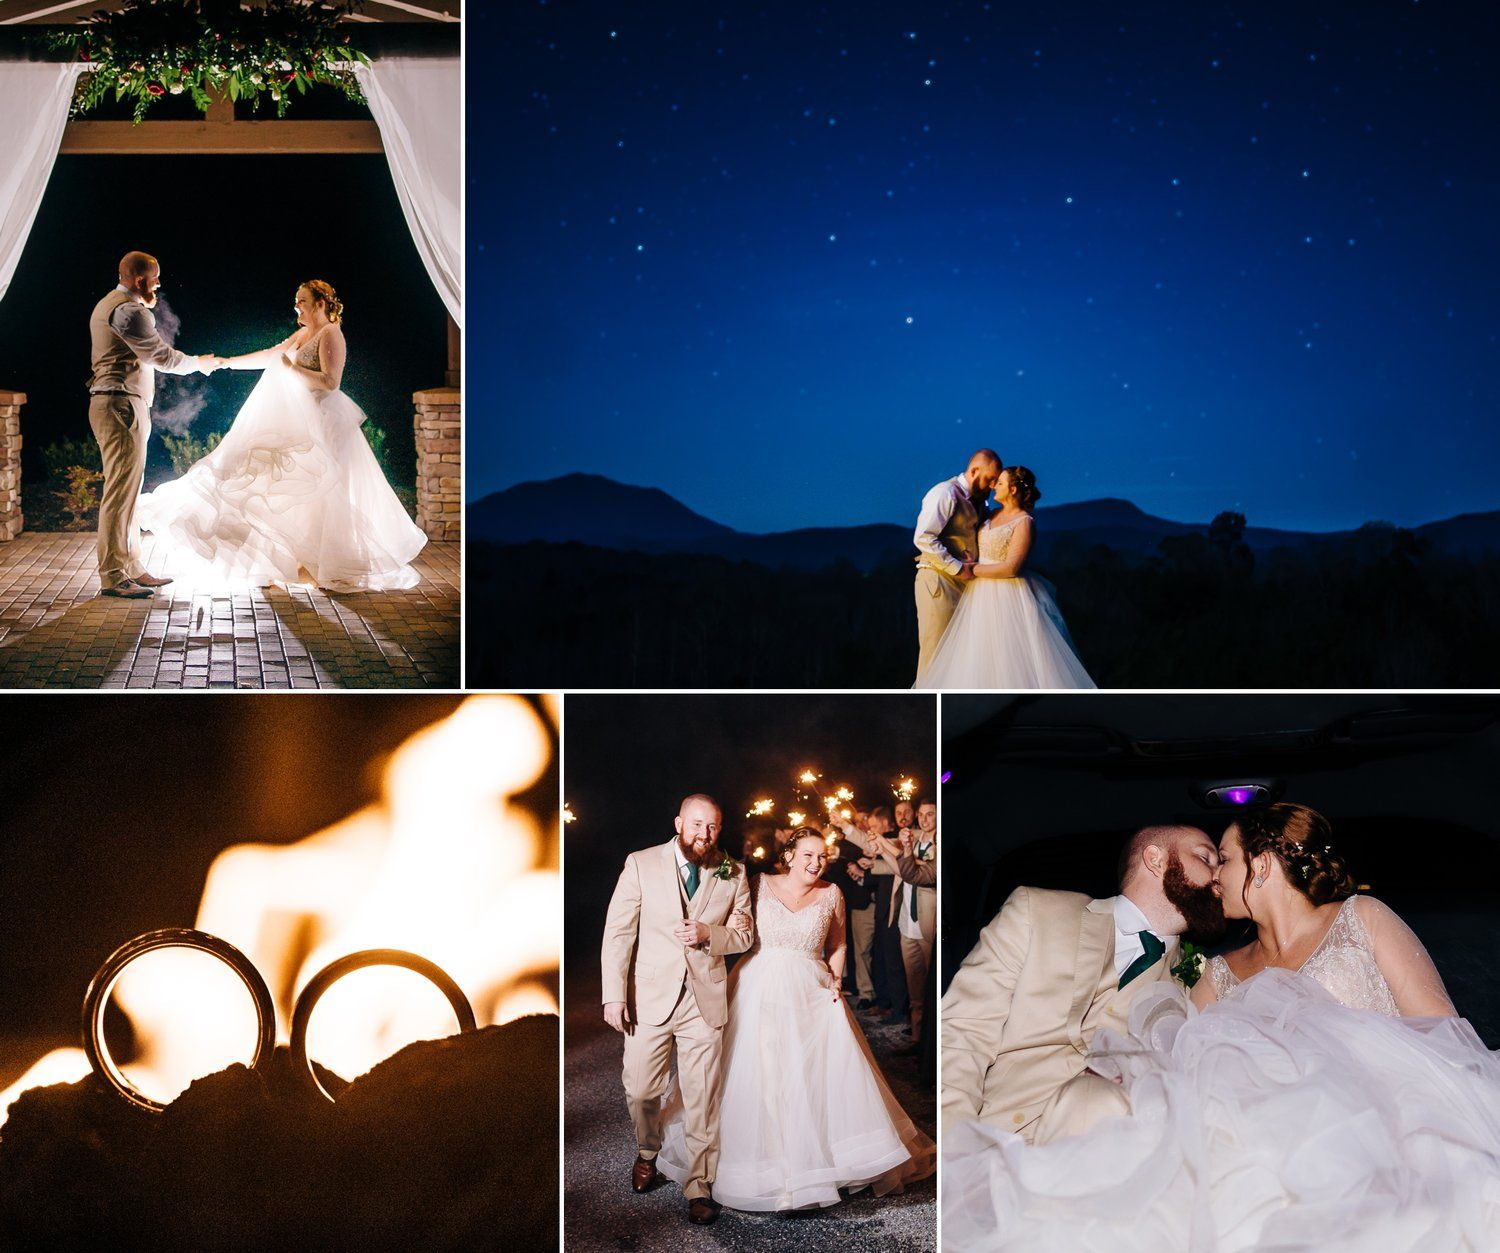 Alden & Jessica's Mountain Lodge Wedding At Glass Hill